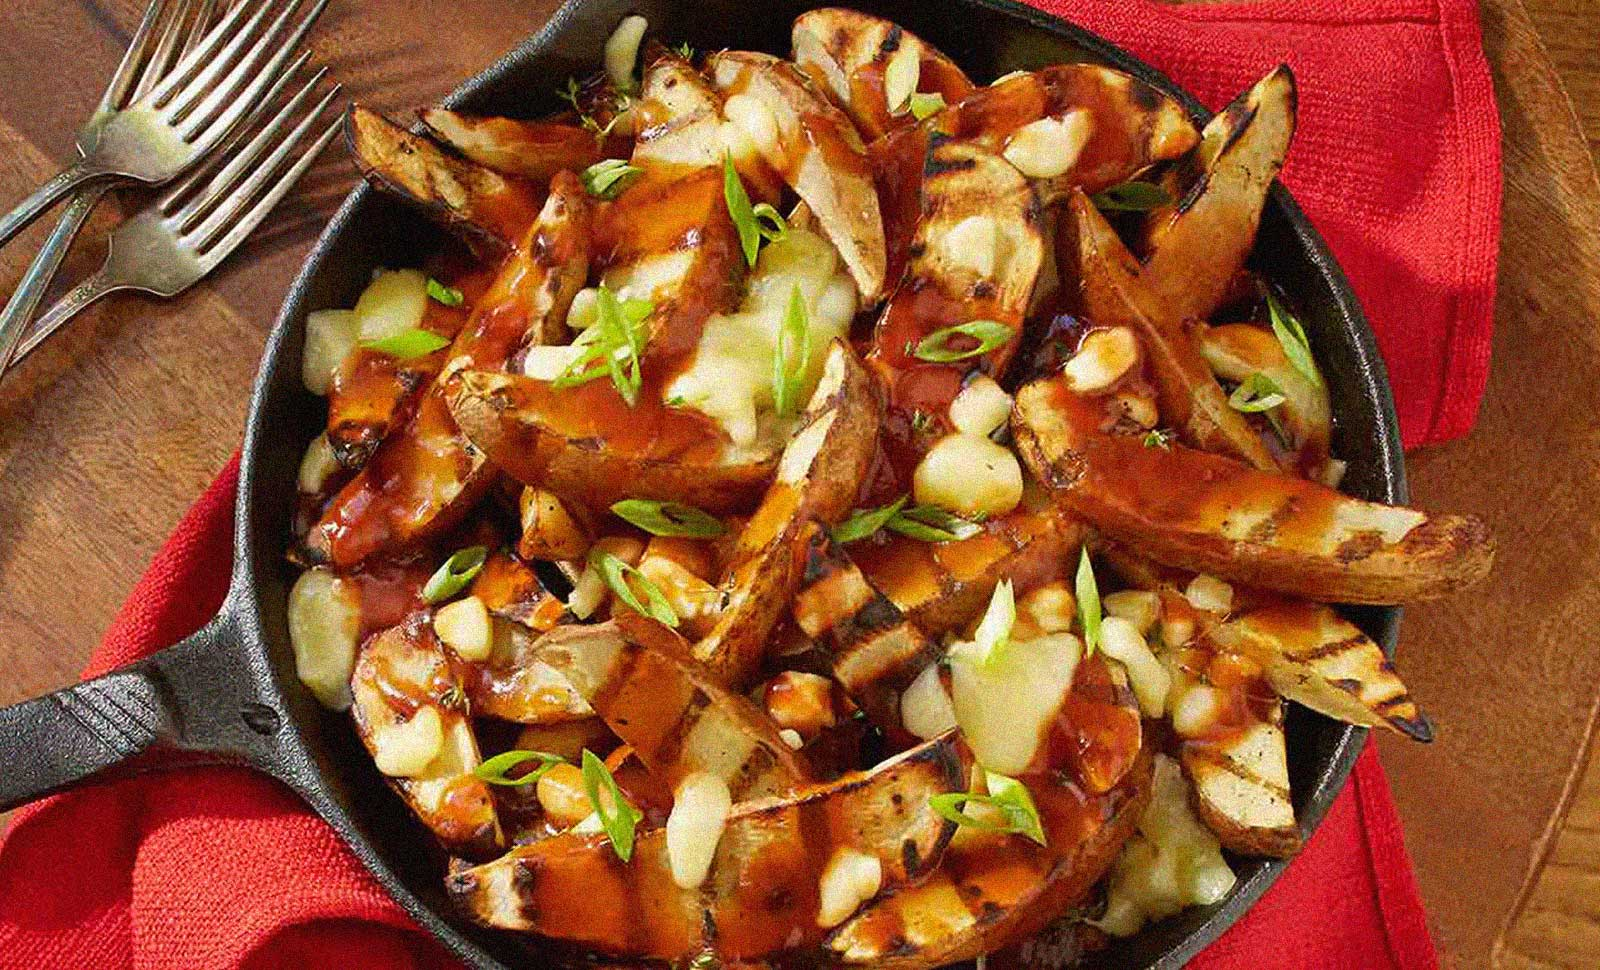 Gourmet grilled poutine.